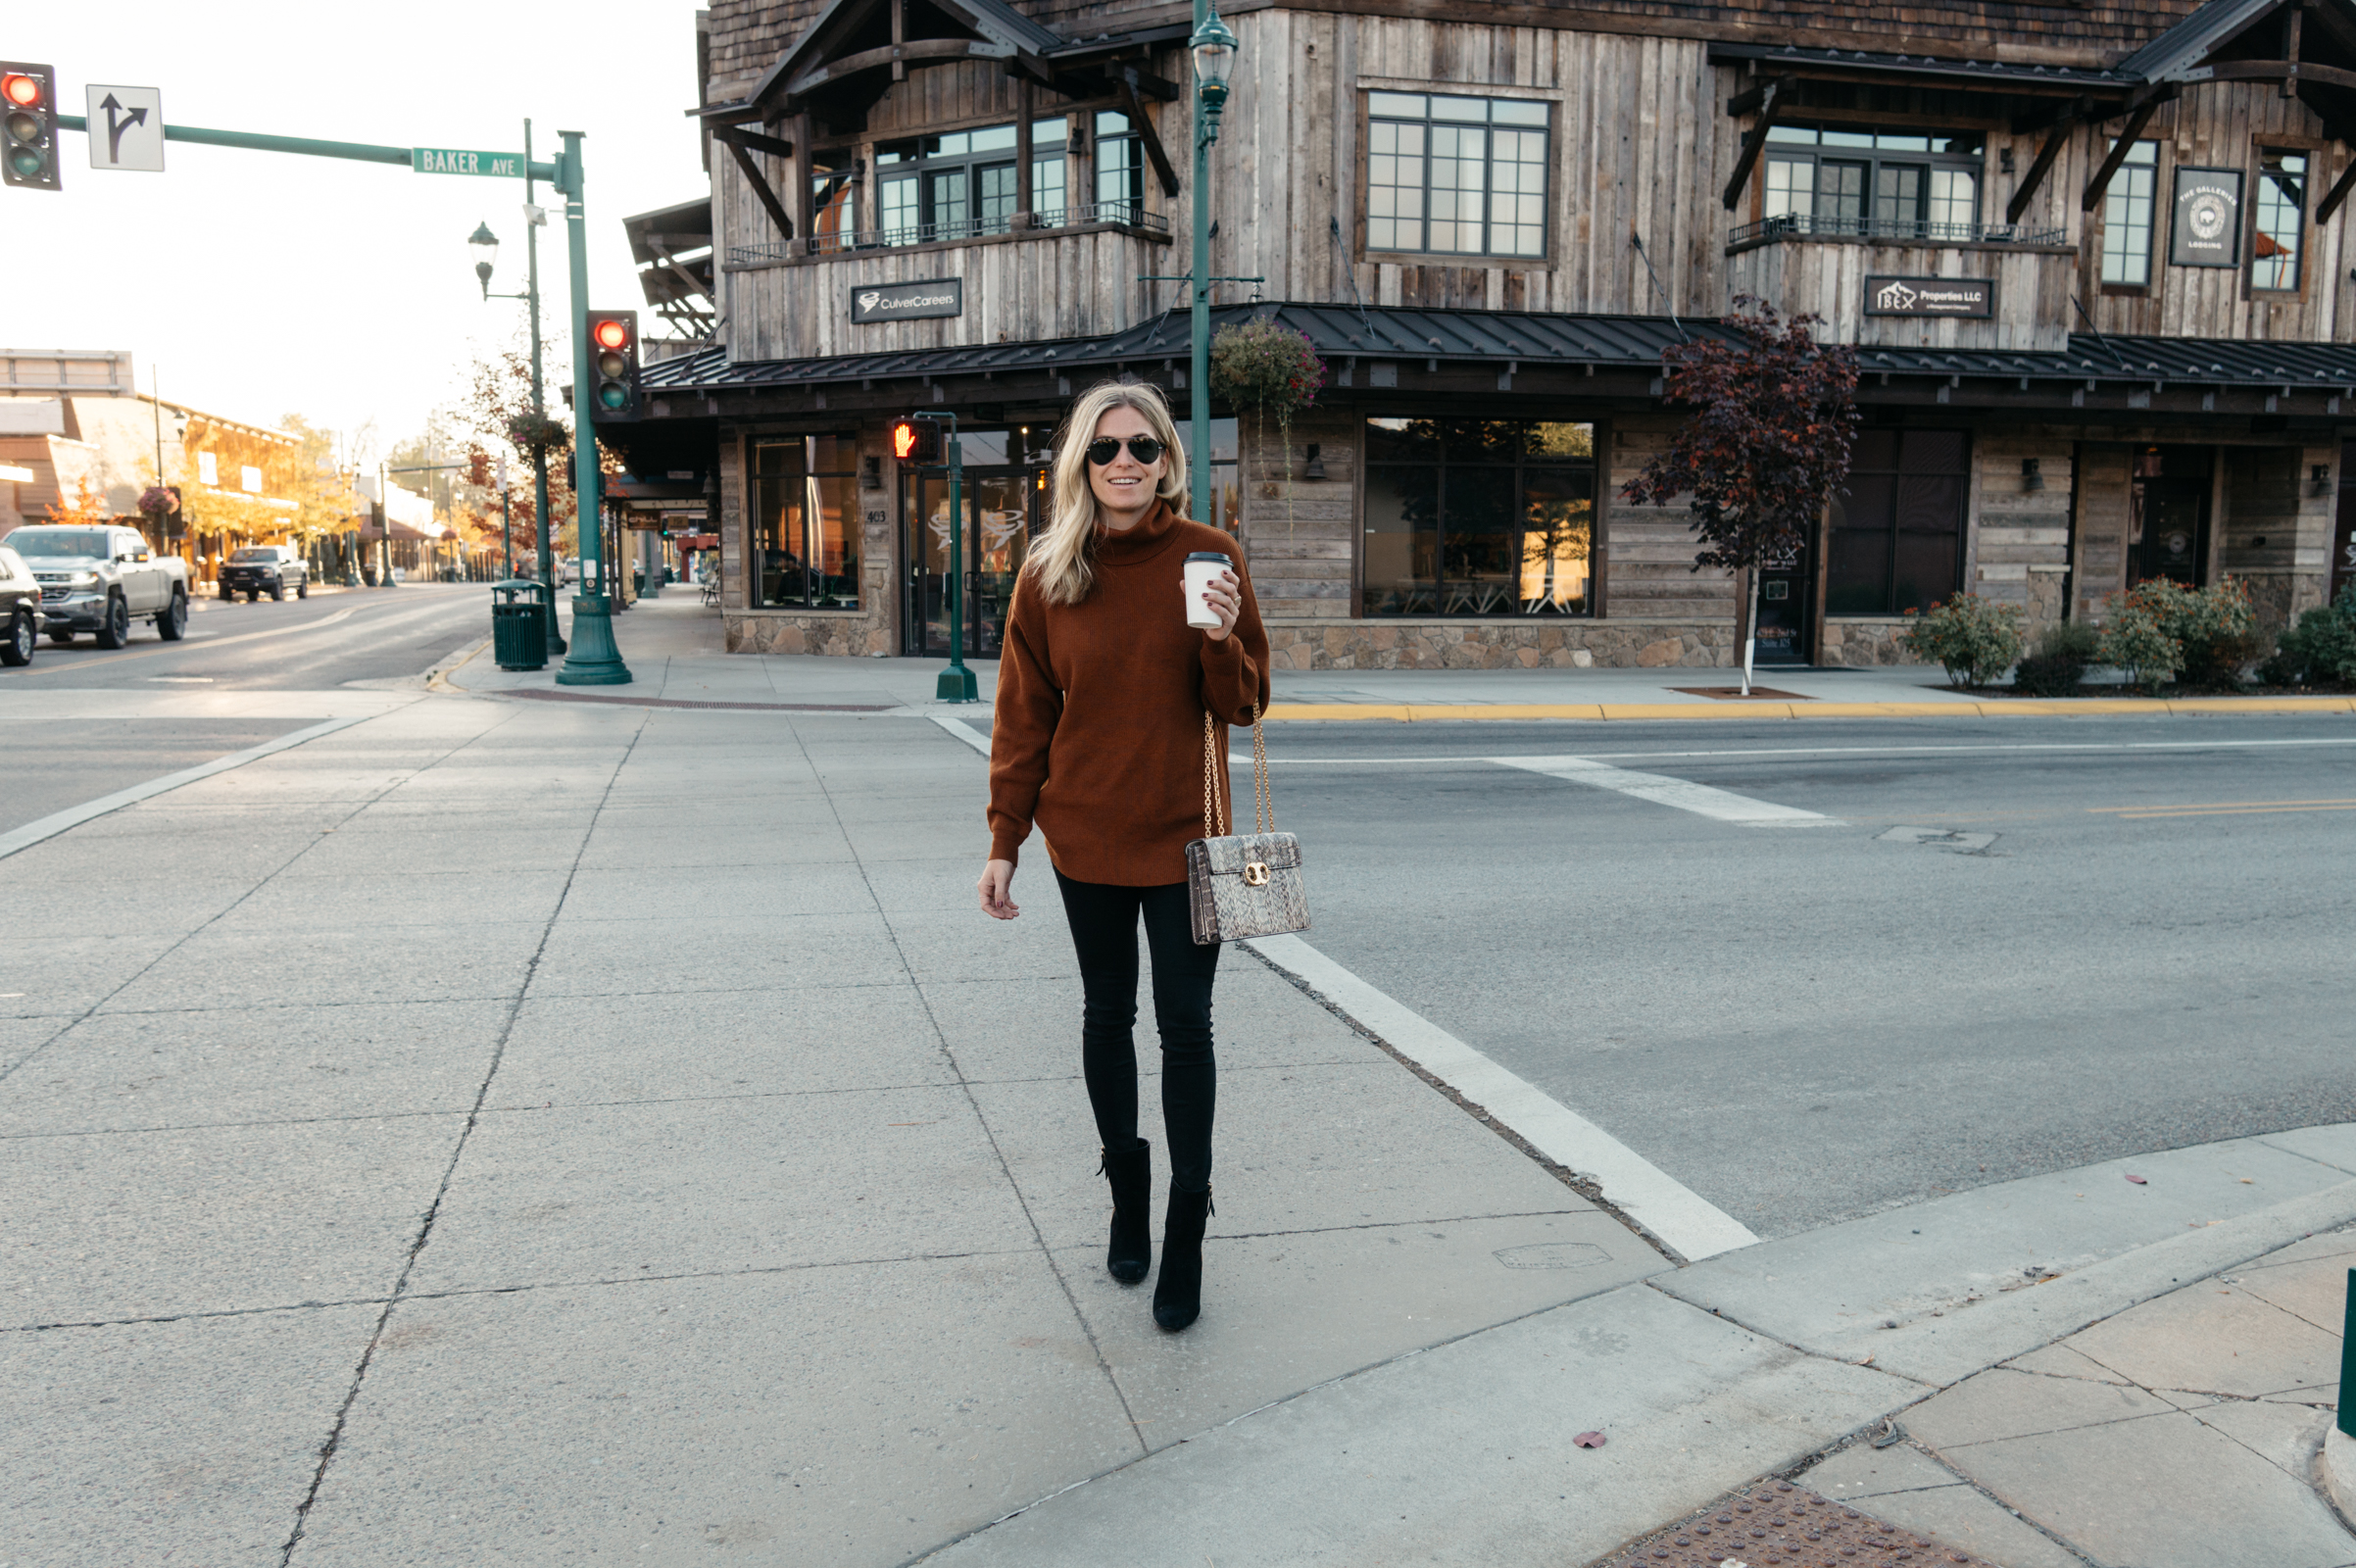 woman standing in the pedestrian and holding a coffee